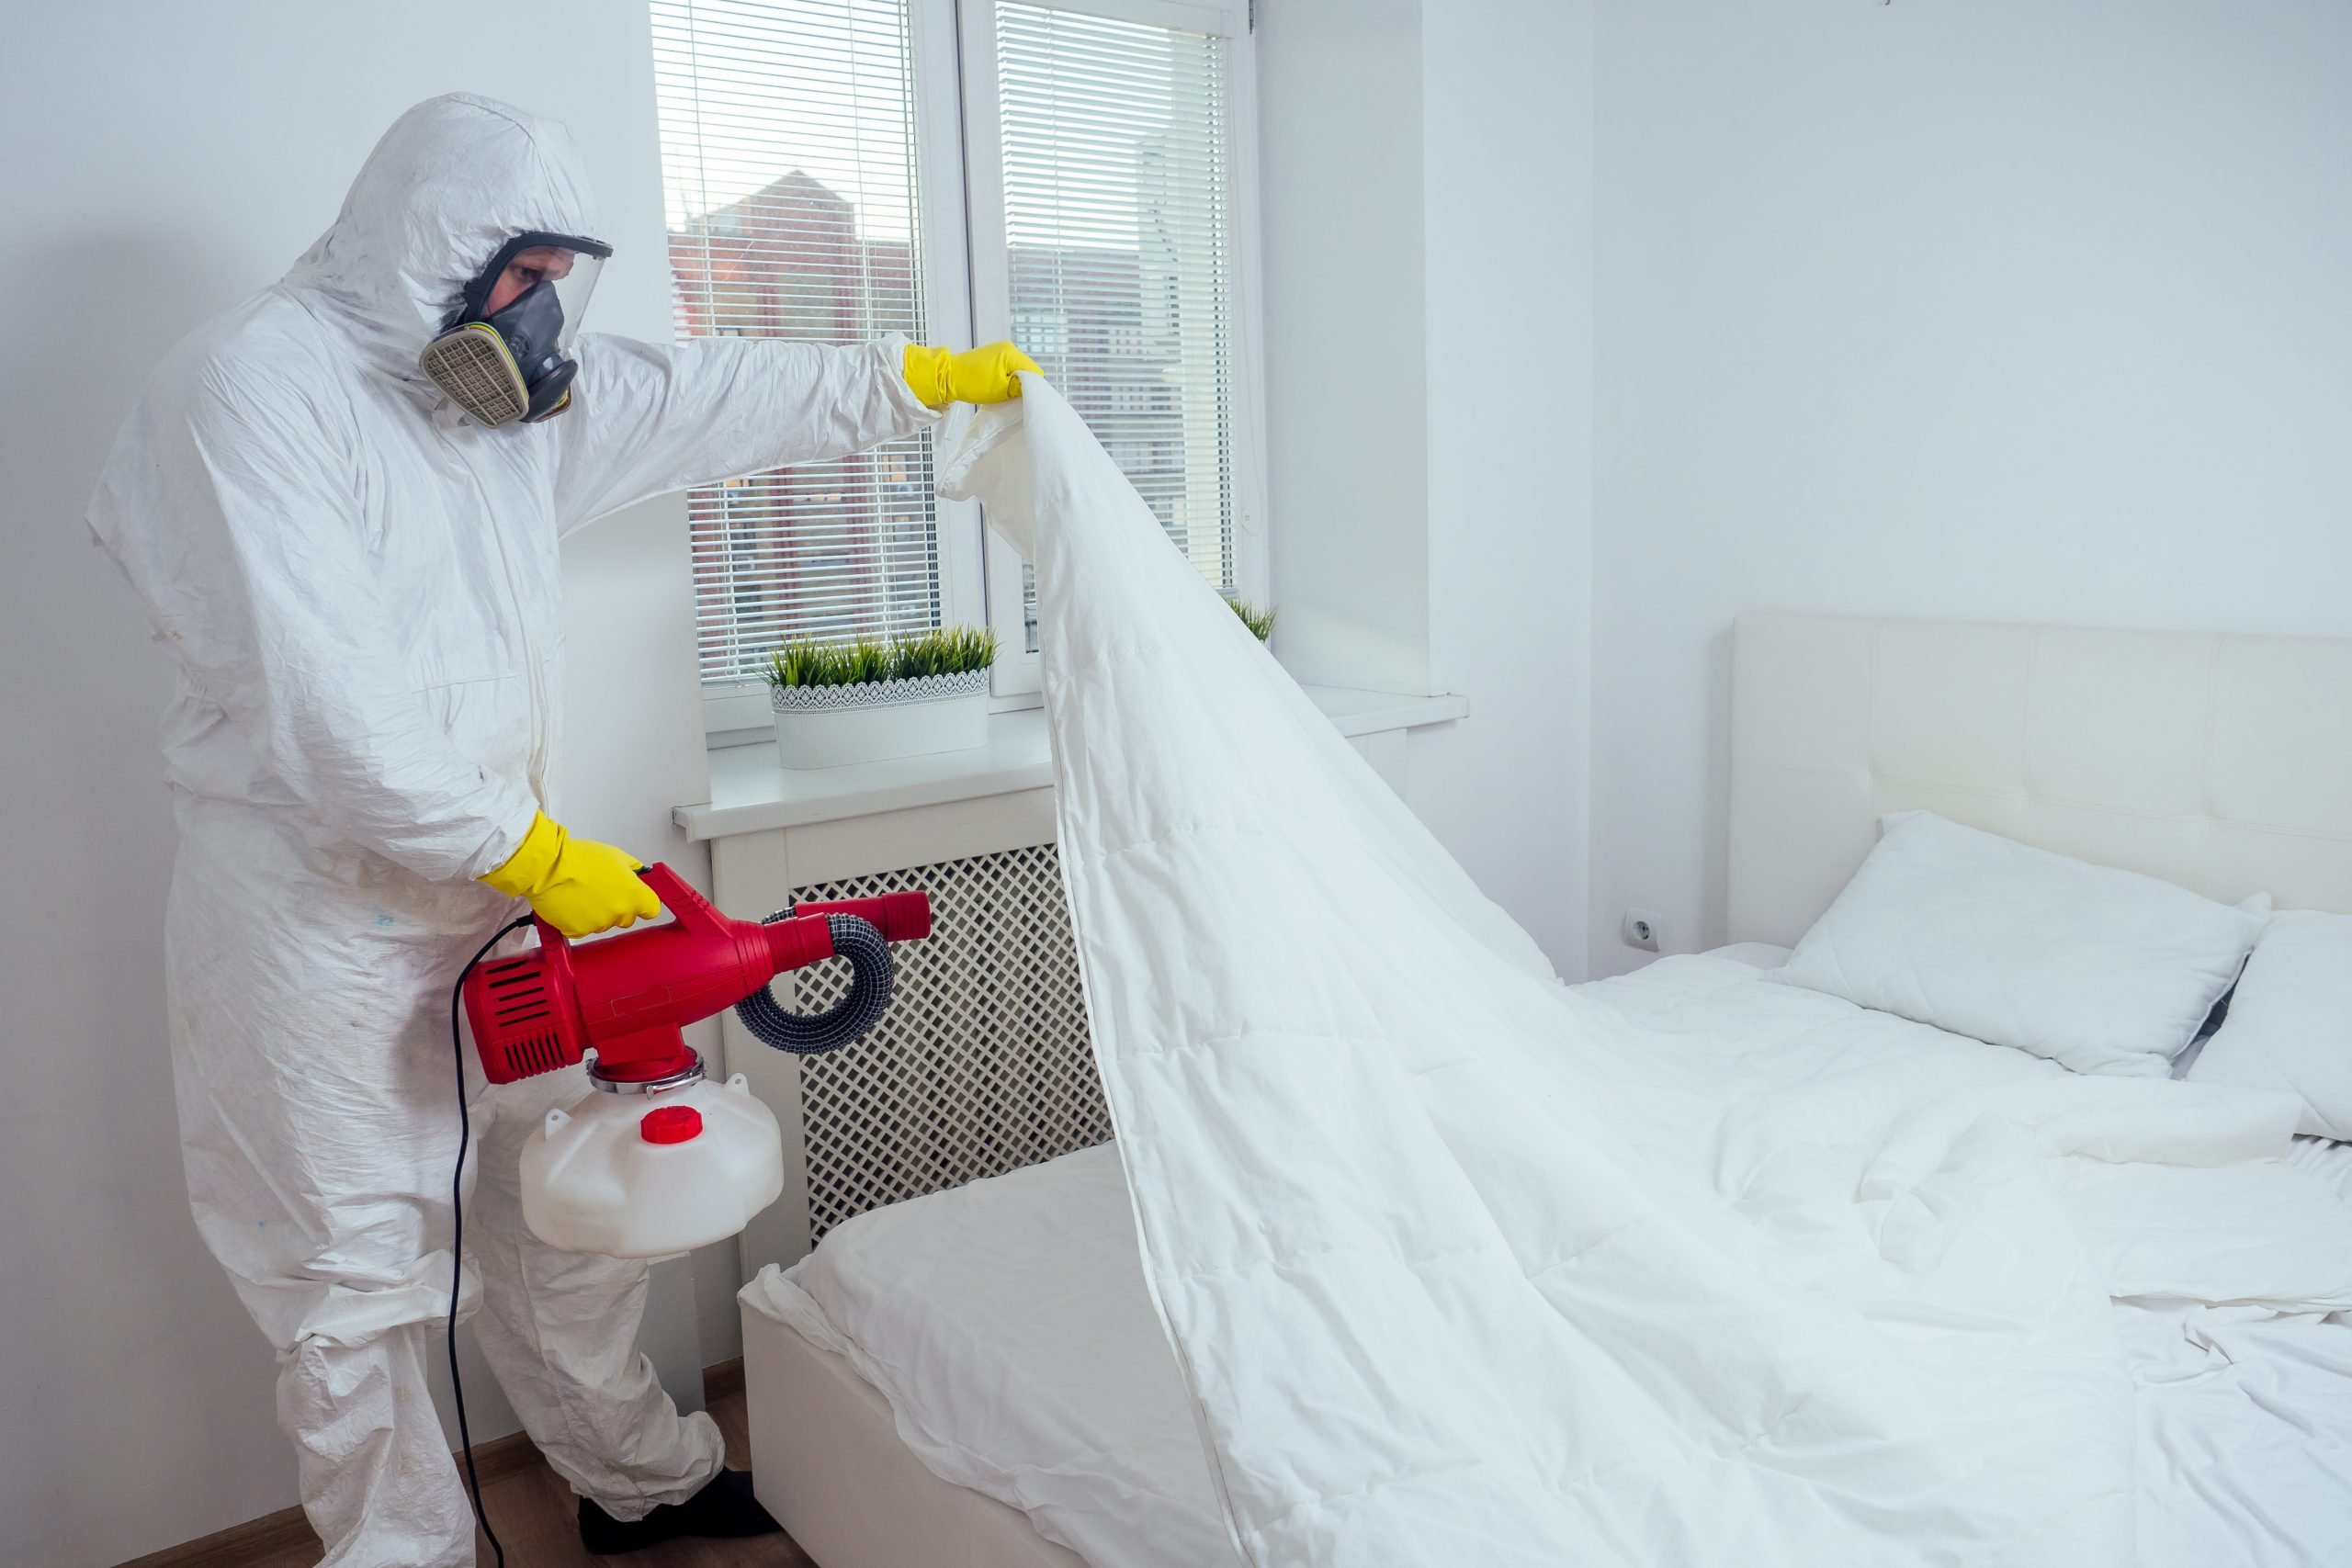 Why You Should Hire An Expert Exterminator To Get Rid Of Pests In Your Home